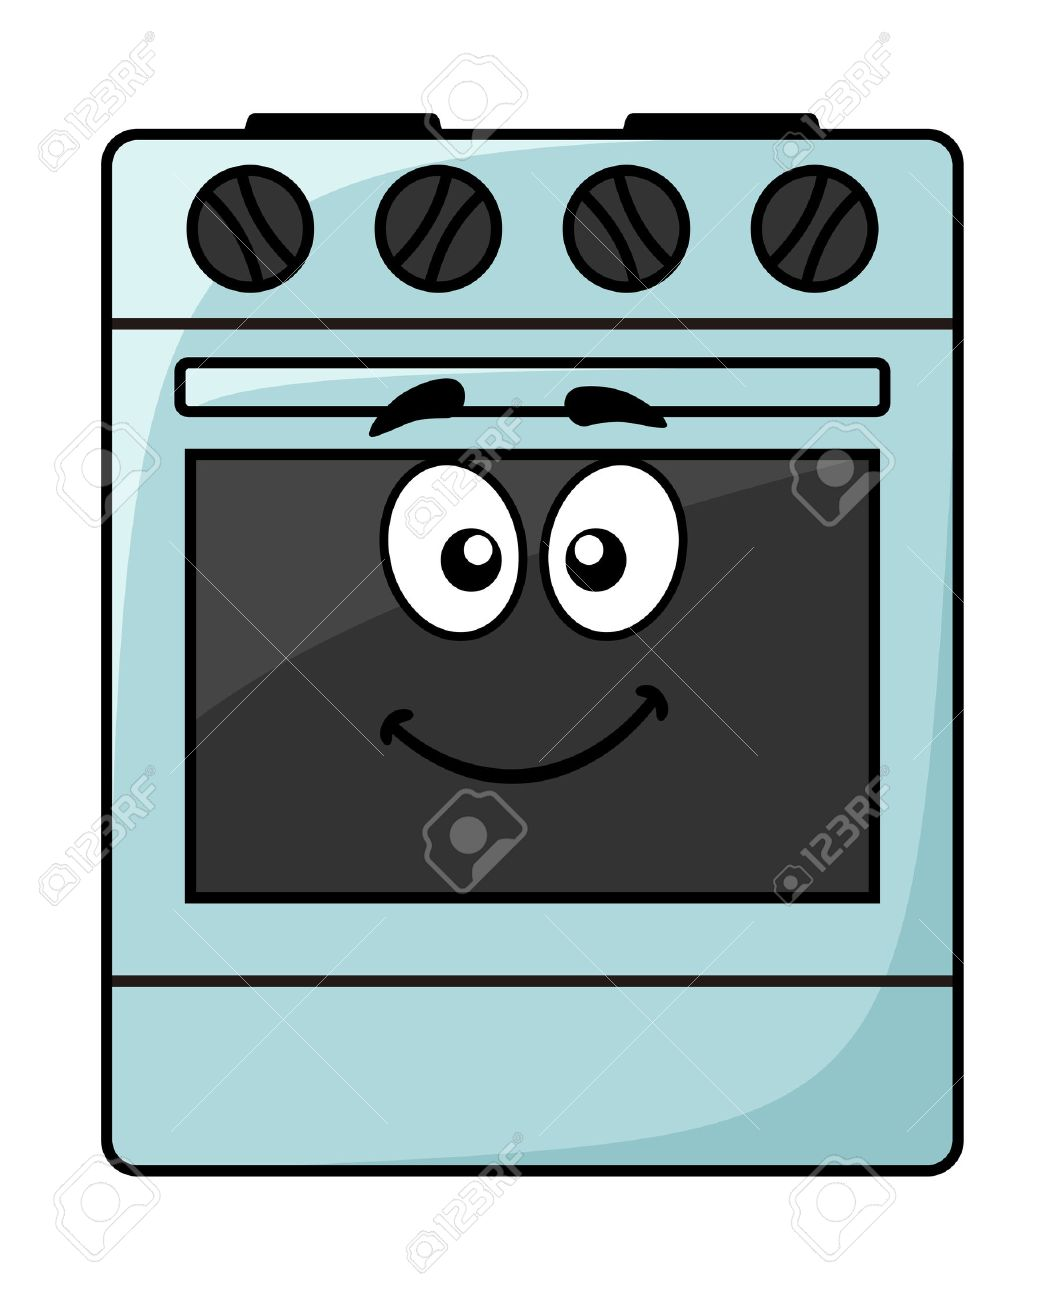 Cartoon kitchen appliances - Cartoon Kitchen Appliance A Happy Smiling Freestanding Electrical Oven Unit With Big Googly Eyes Isolated